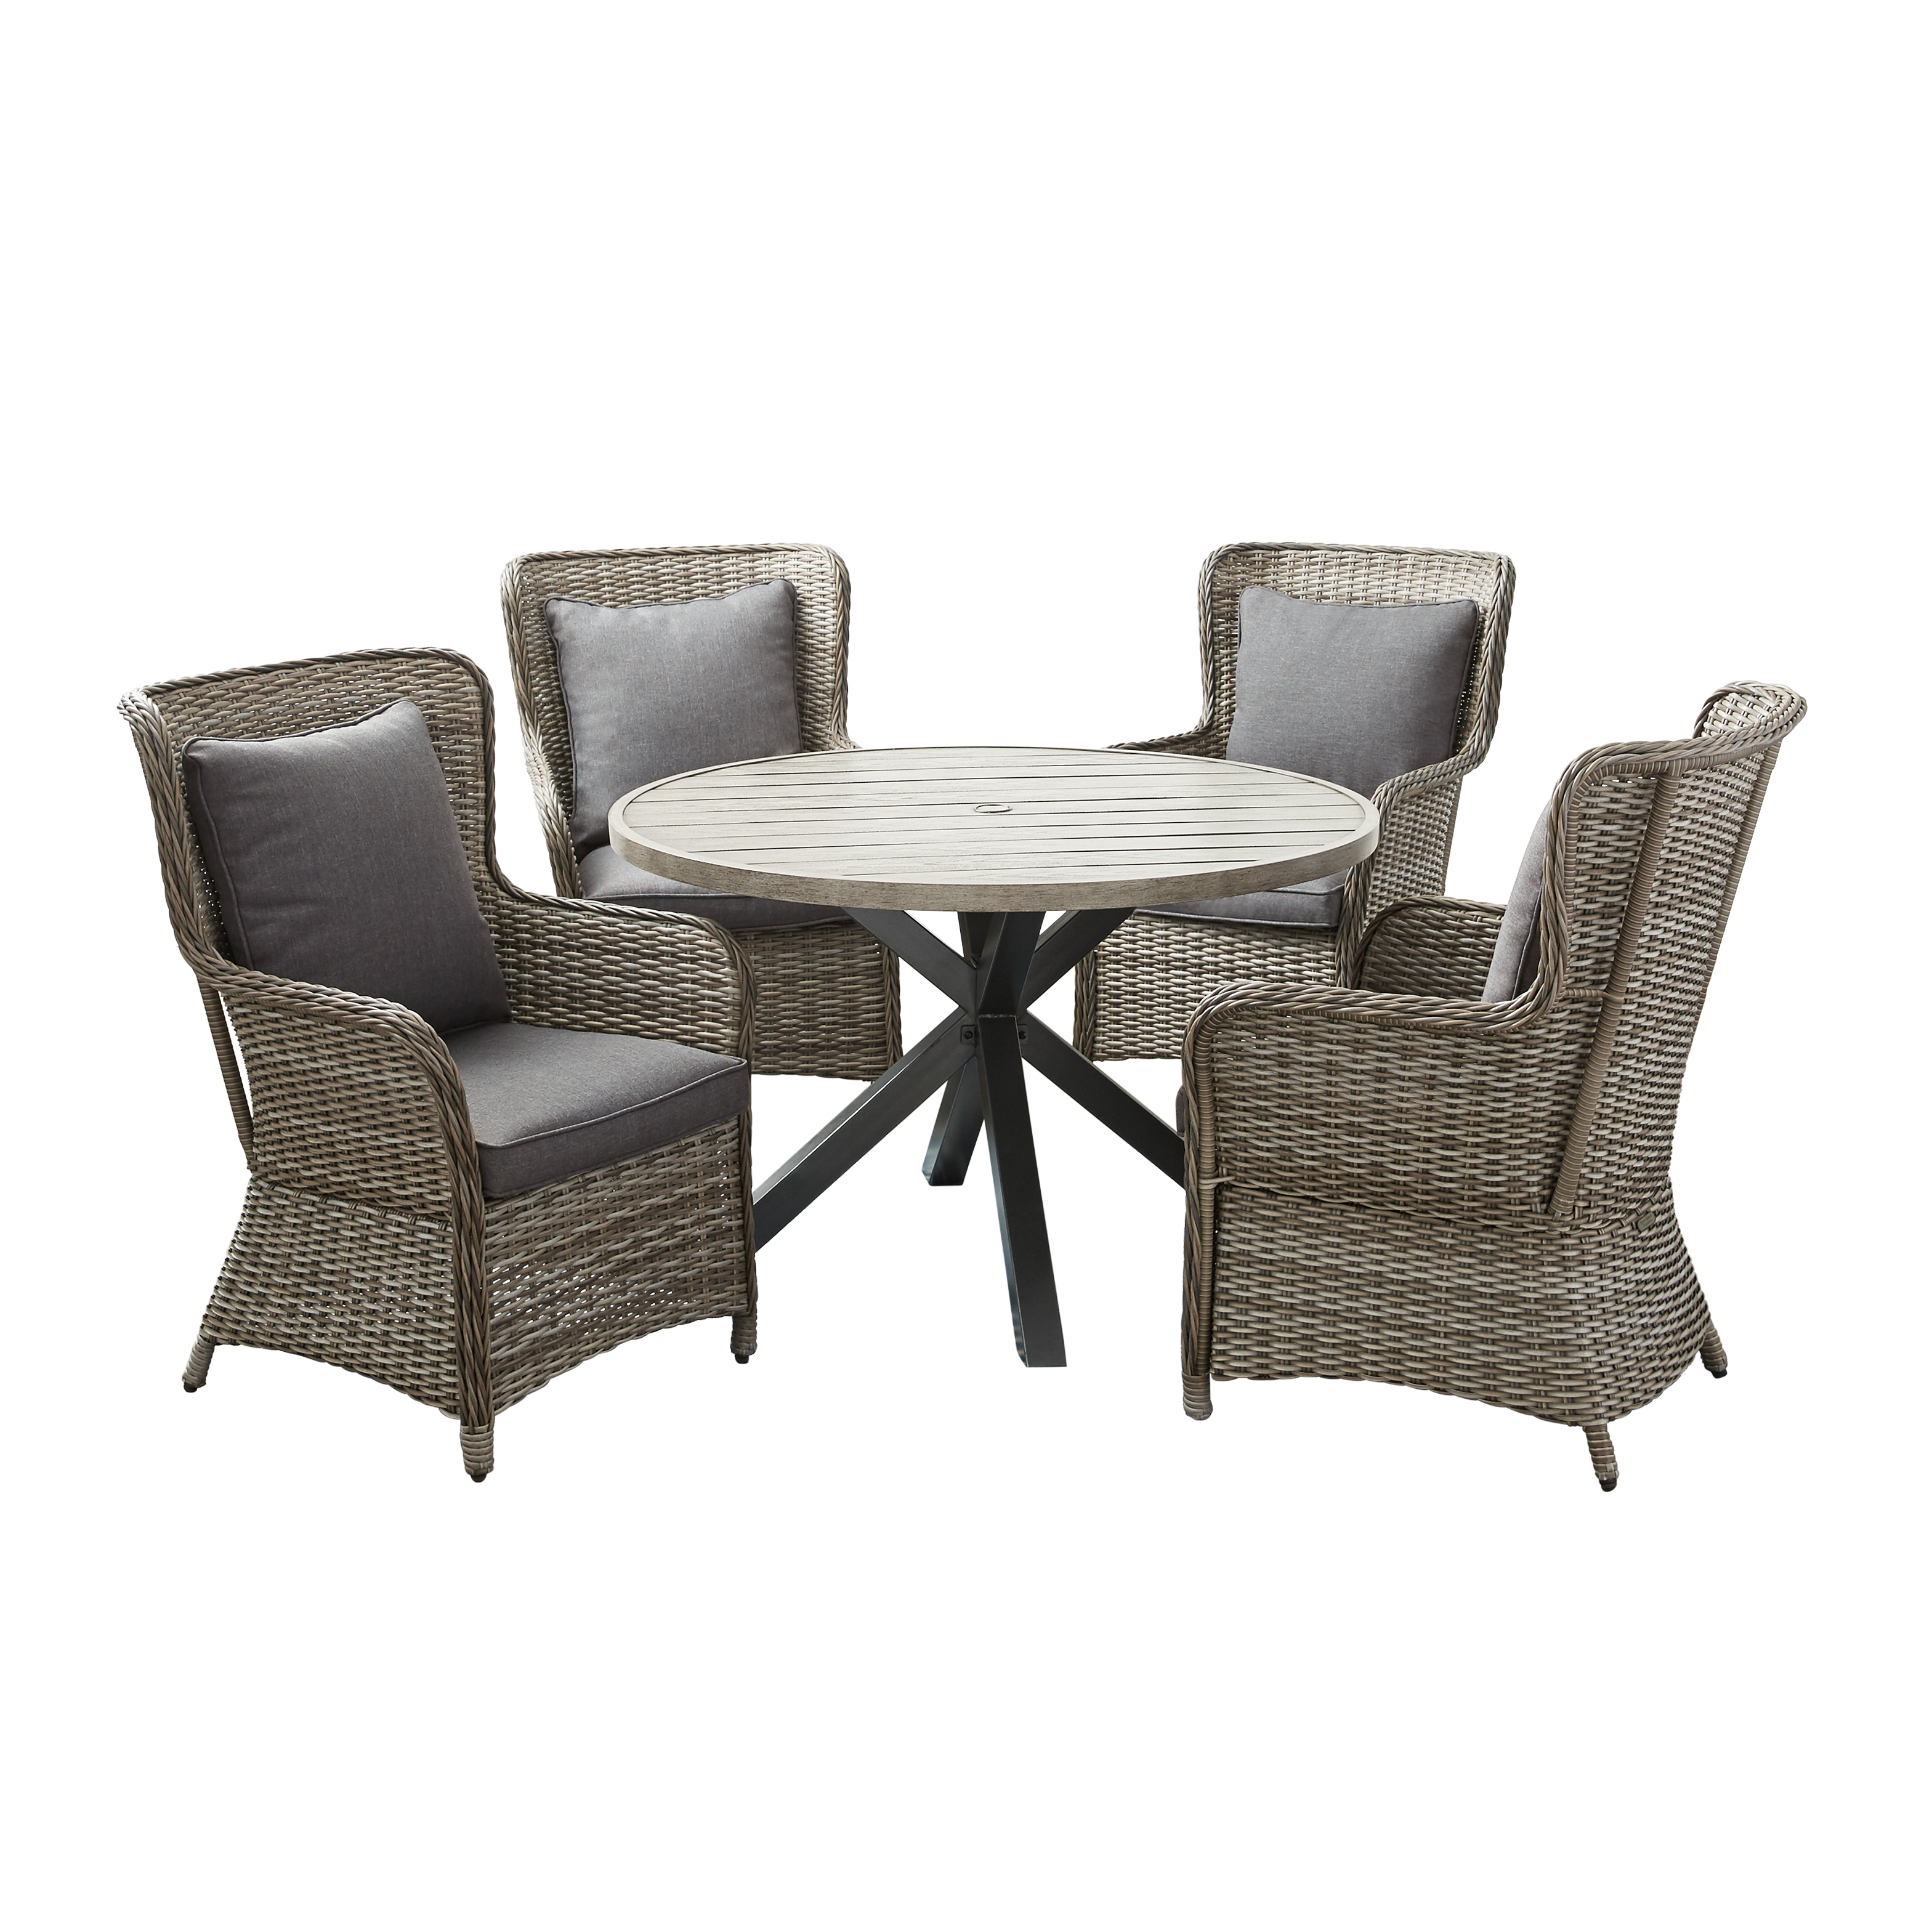 Better Homes & Gardens Victoria 5-Piece Patio Wicker Dining Set